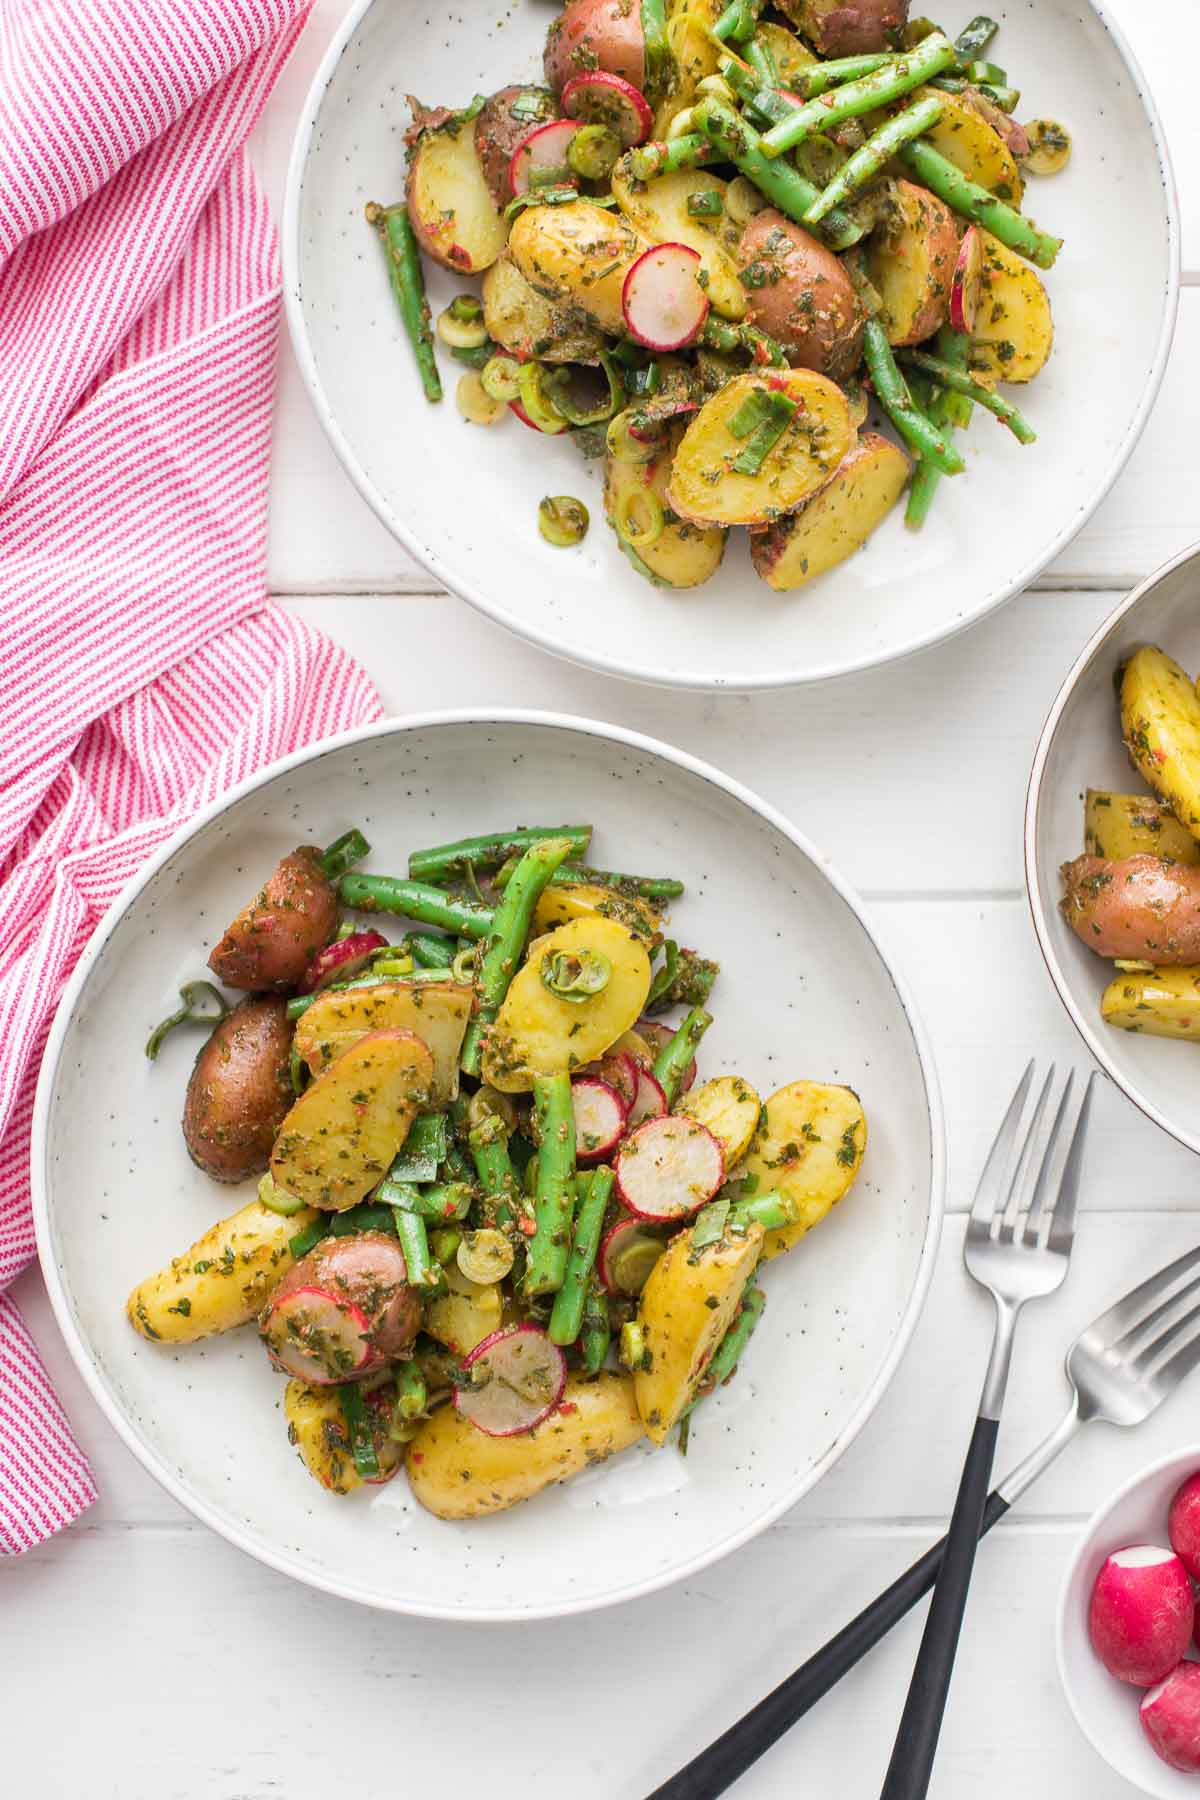 Chimichurri Potato Salad with Green Beans